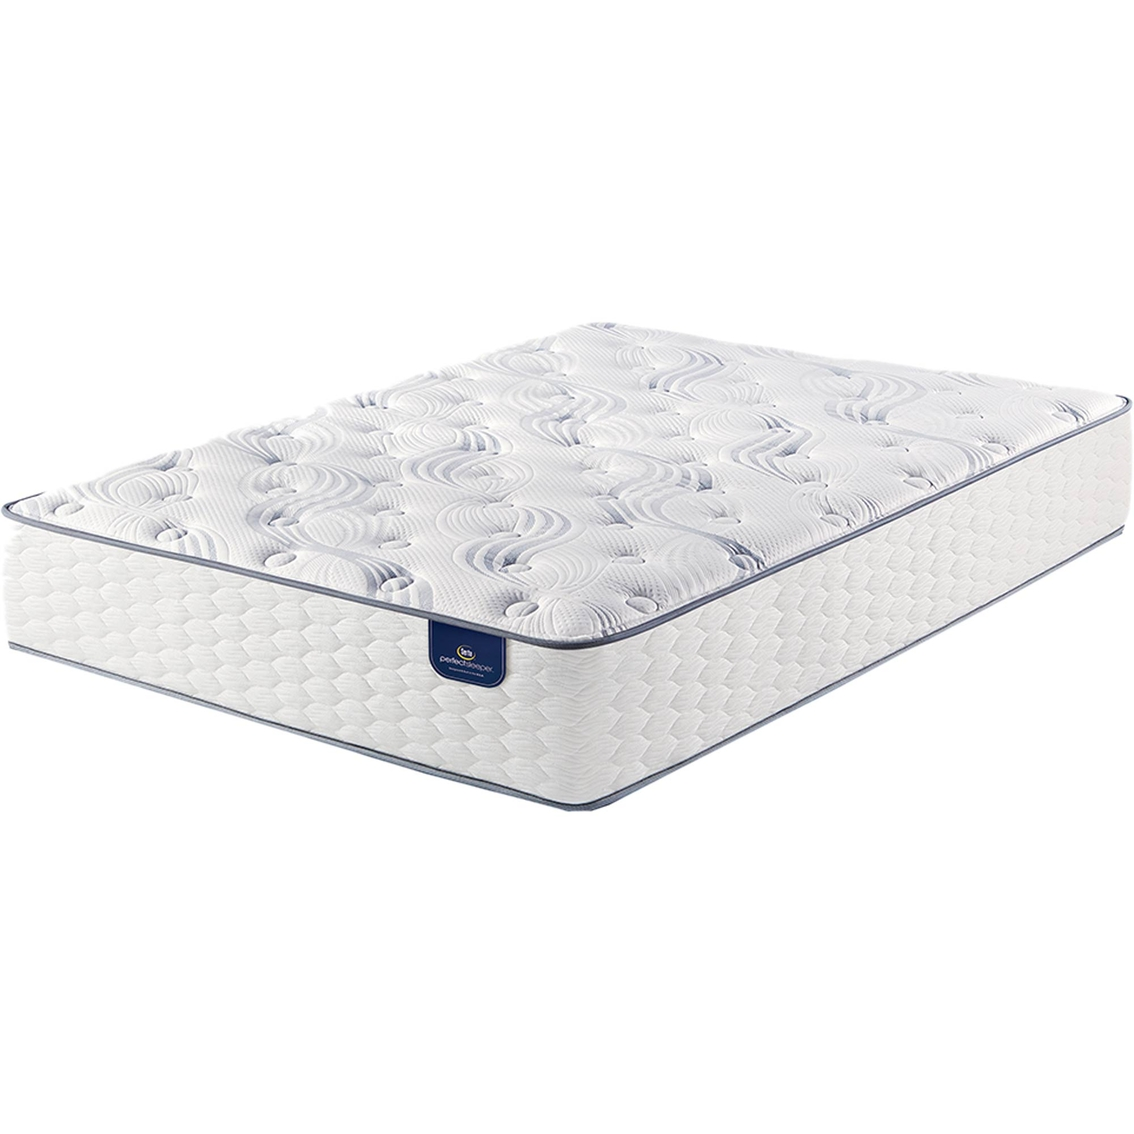 serta perfect sleeper evermoore plush mattress mattresses home